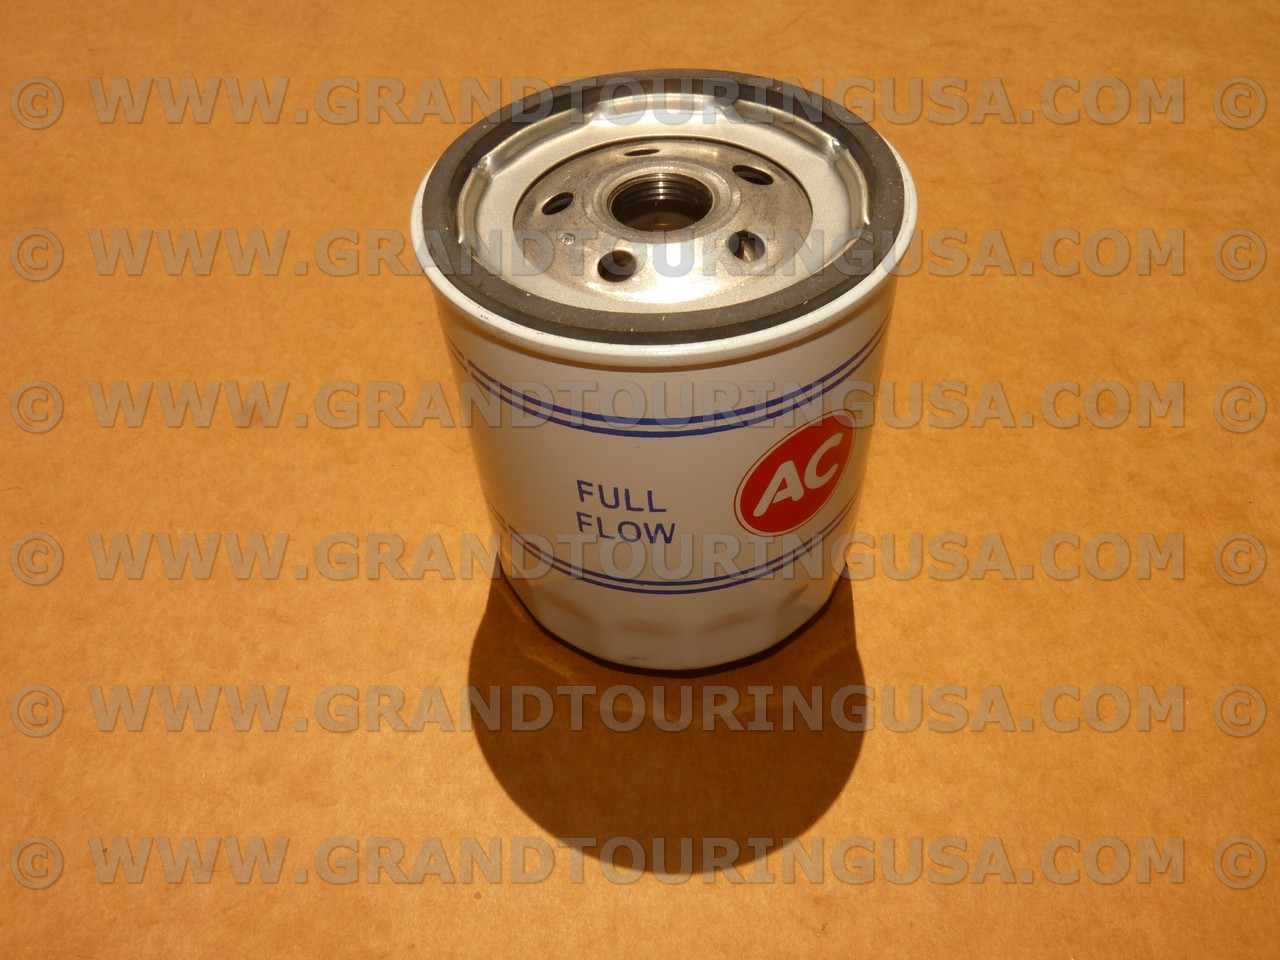 Fuel_Filter_elem_4da51ee77dea7.jpg